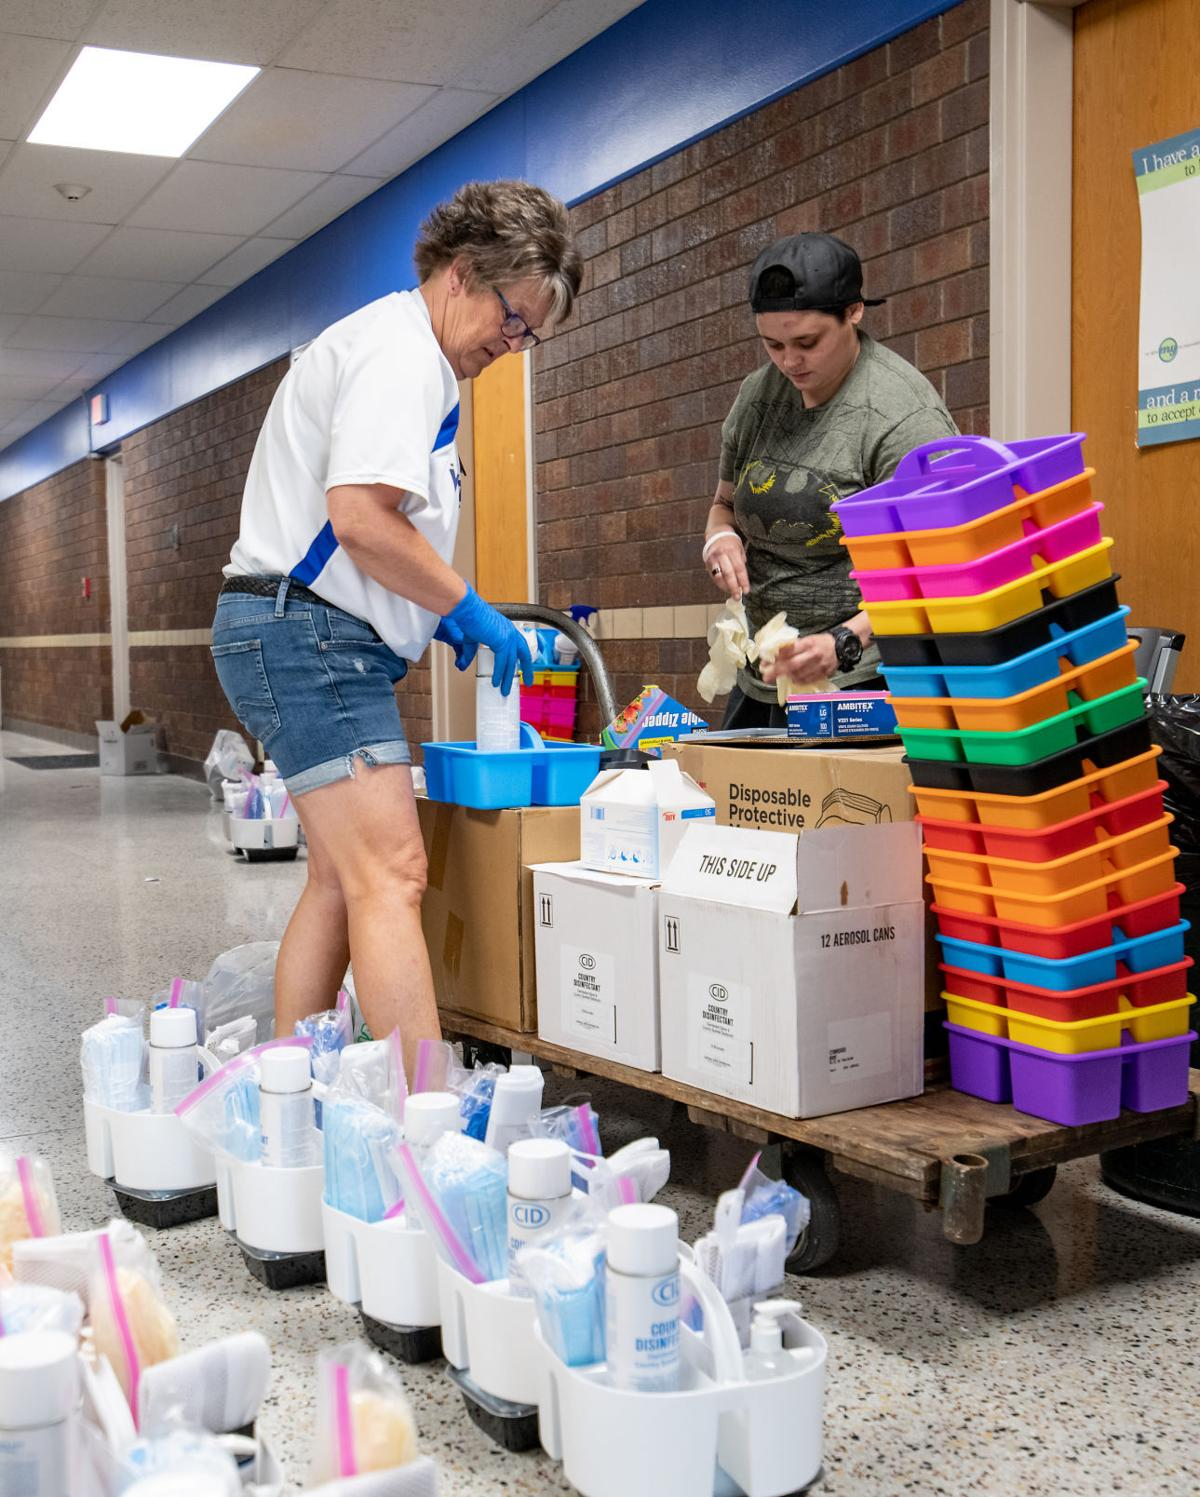 #2 Sanitizing Woodbury Central before students resume school amid COVID-19